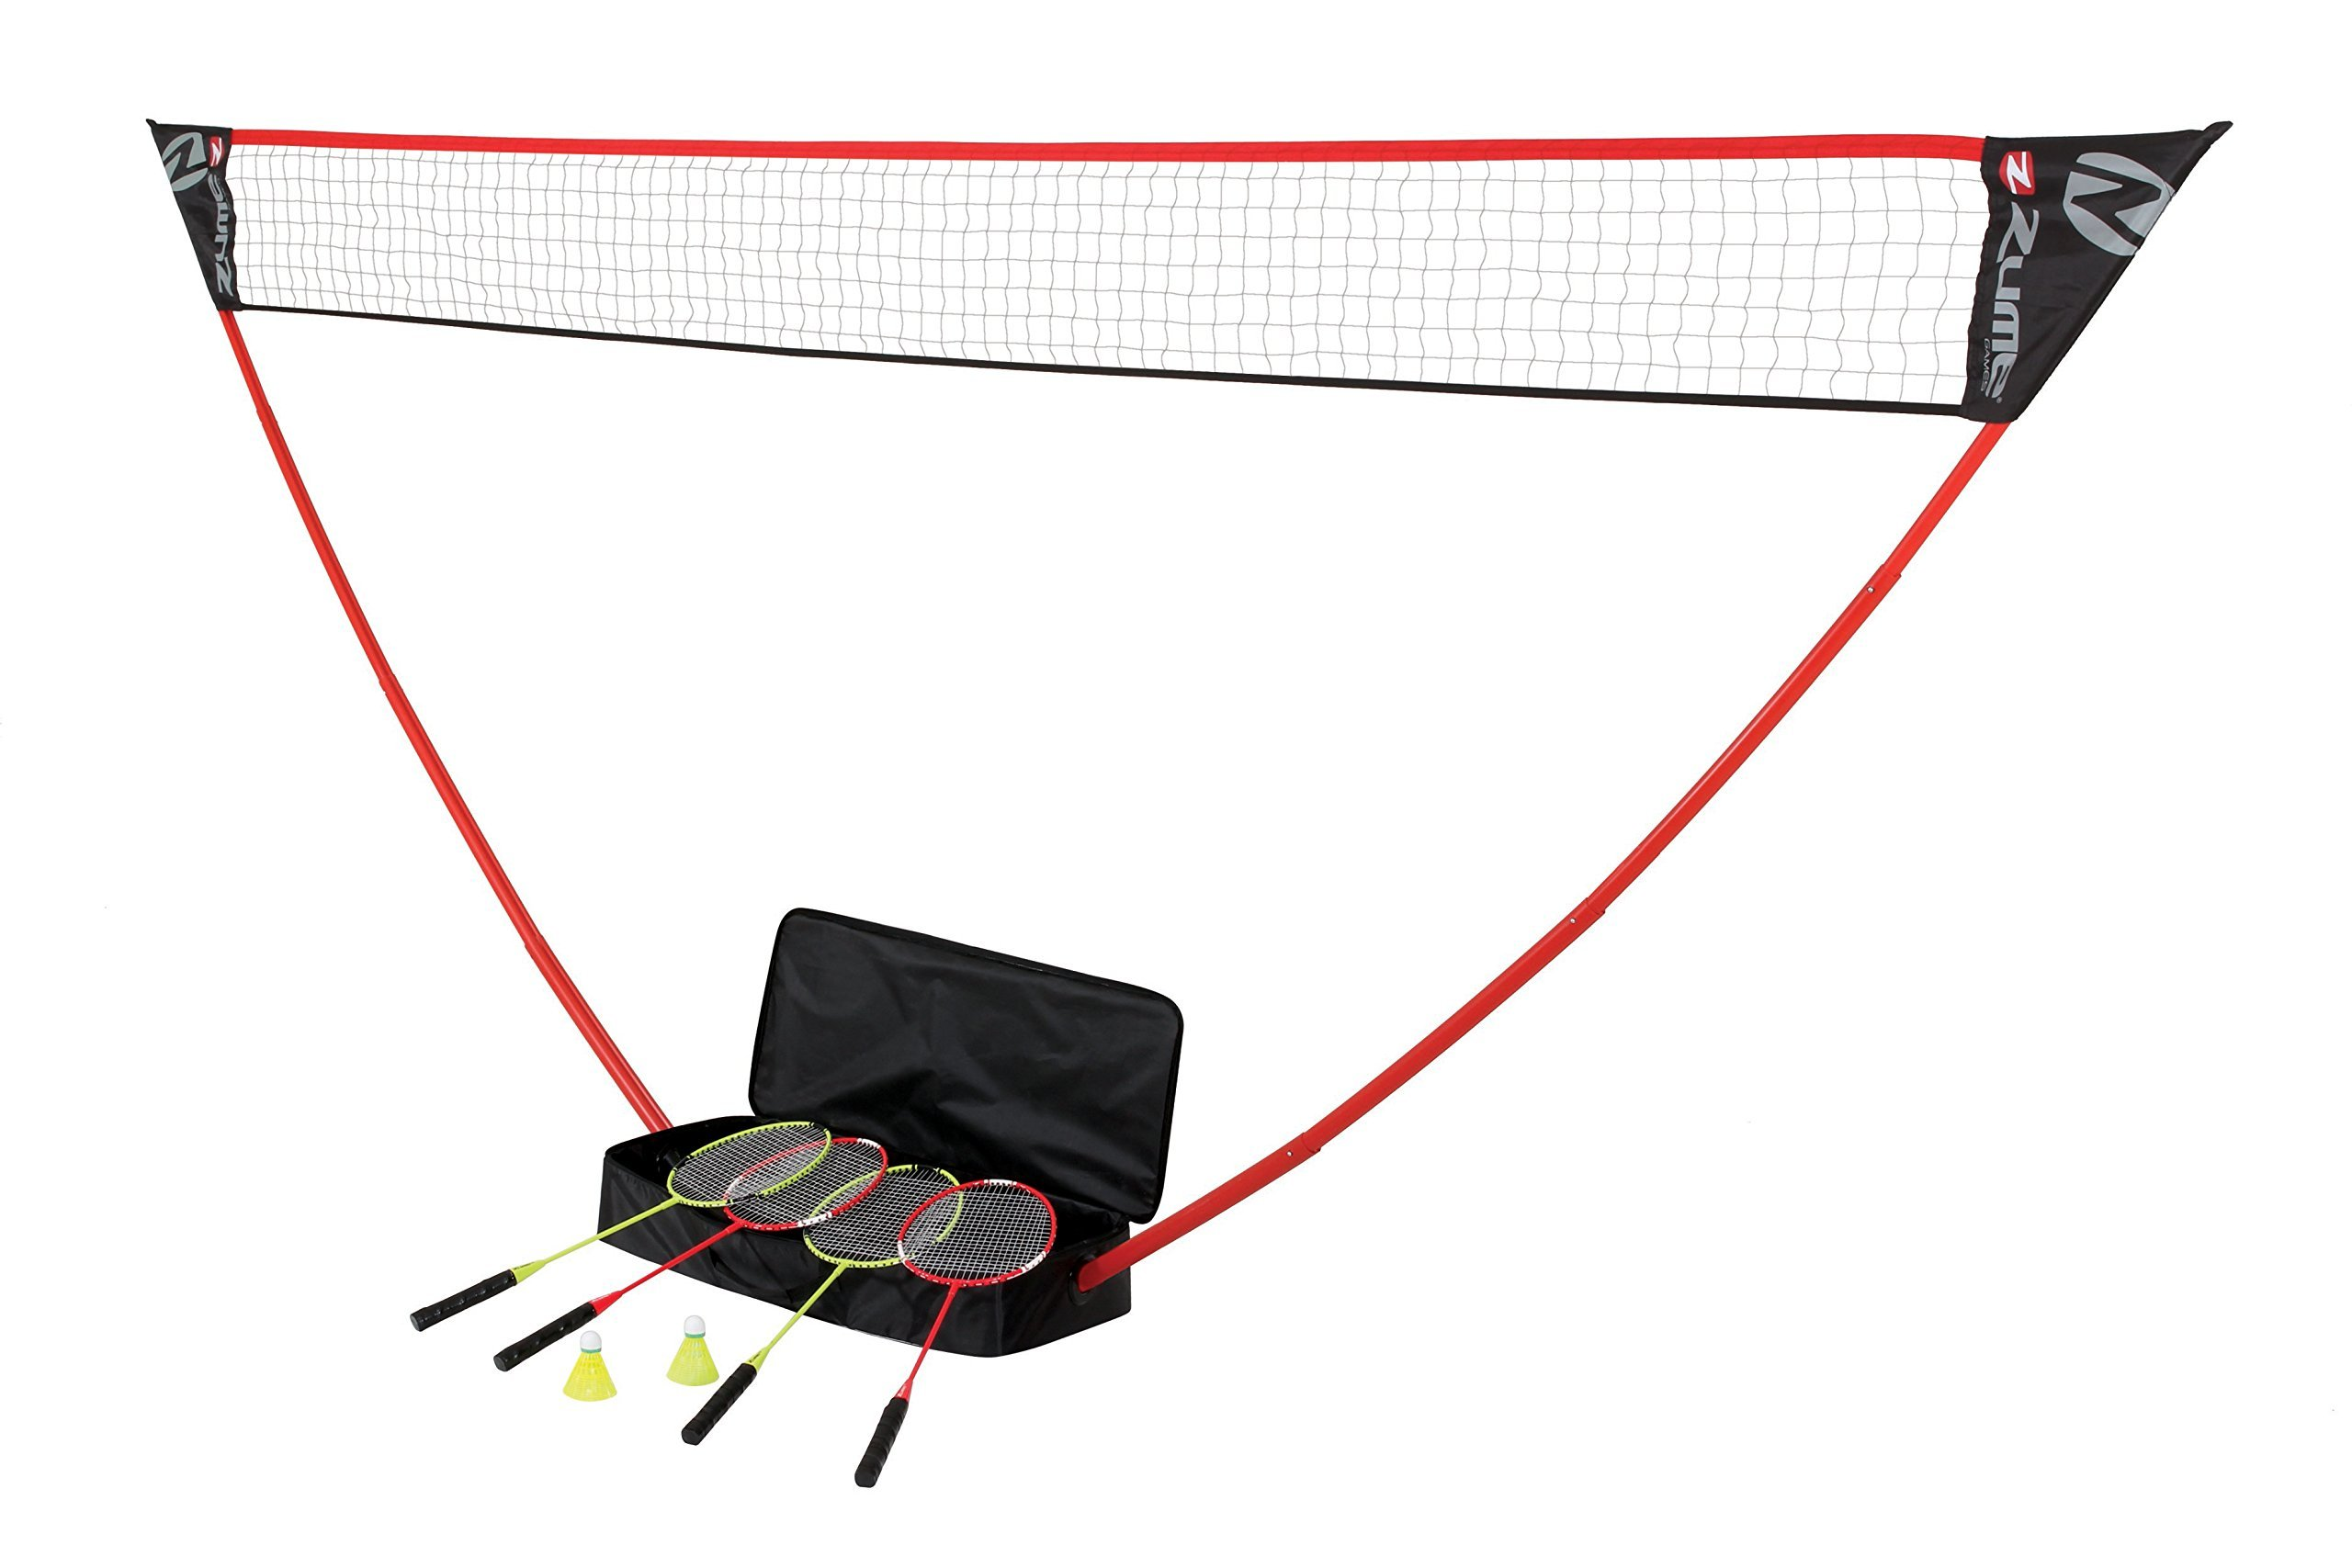 Zume Games Portable Badminton Set with Freestanding Base - Sets Up on Any Surface in Seconds - No Tools or Stakes Required (Renewed)